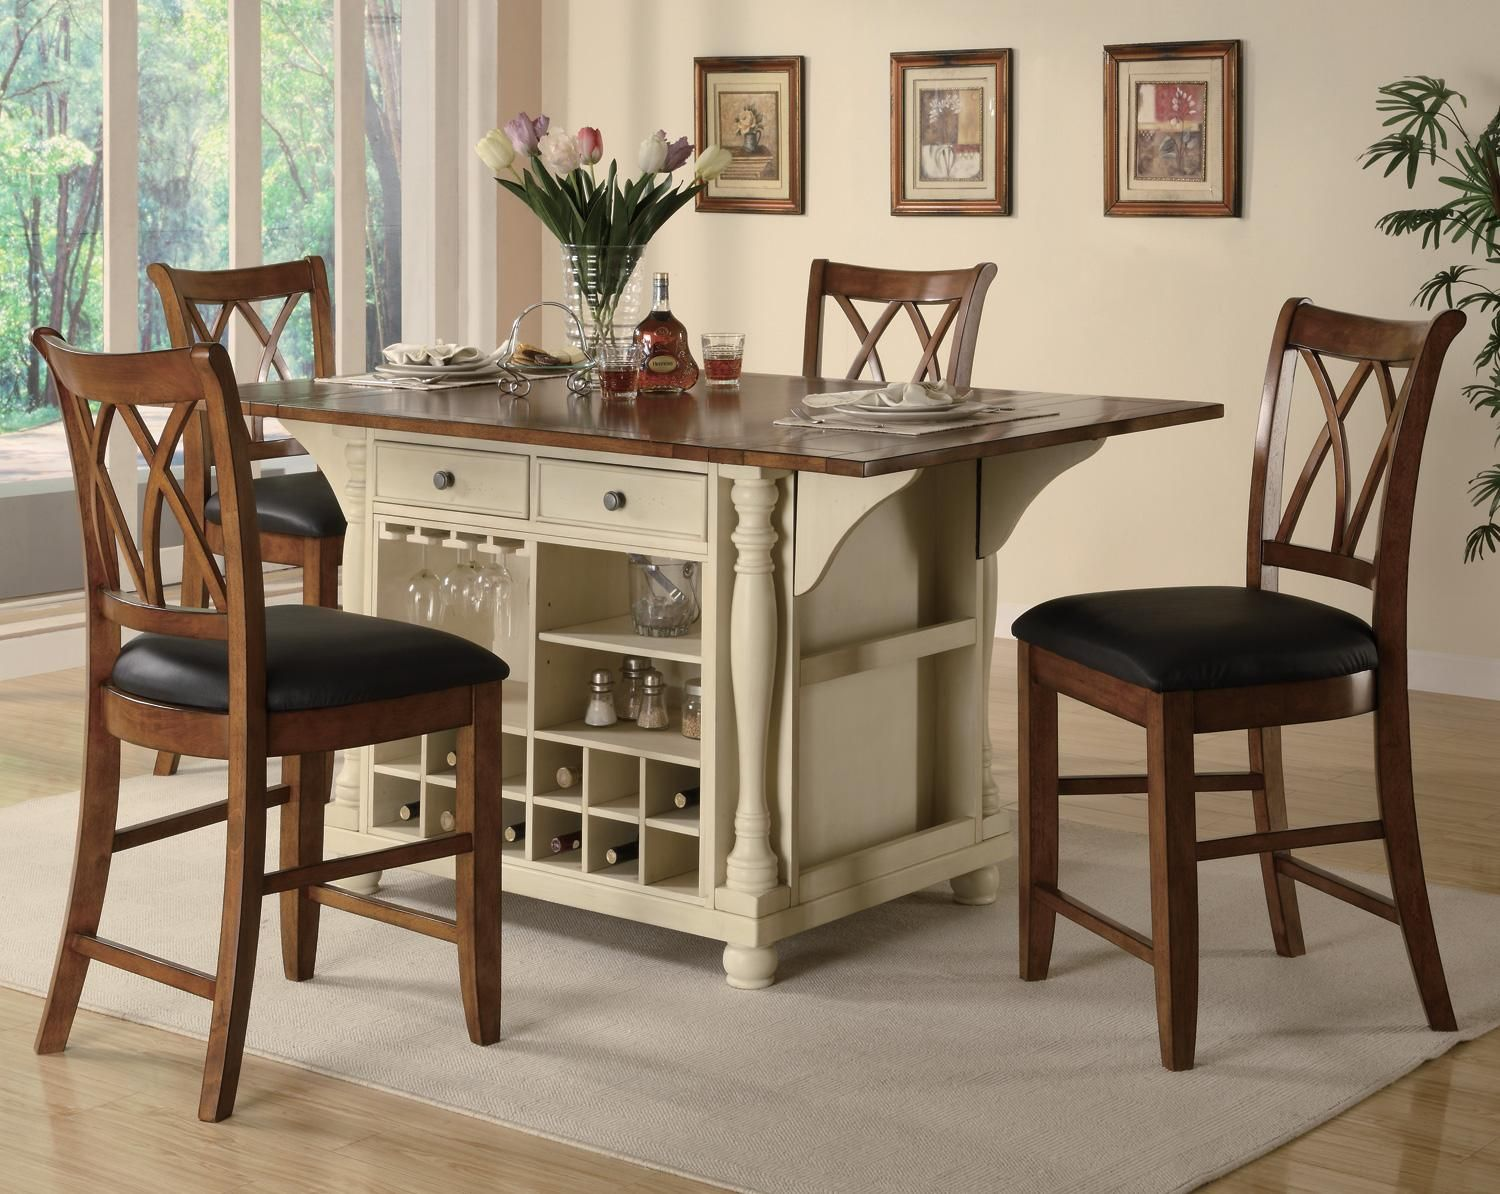 Tall kitchen table and chairs dinette sets kitchen table and furniture counter height stools funiture image